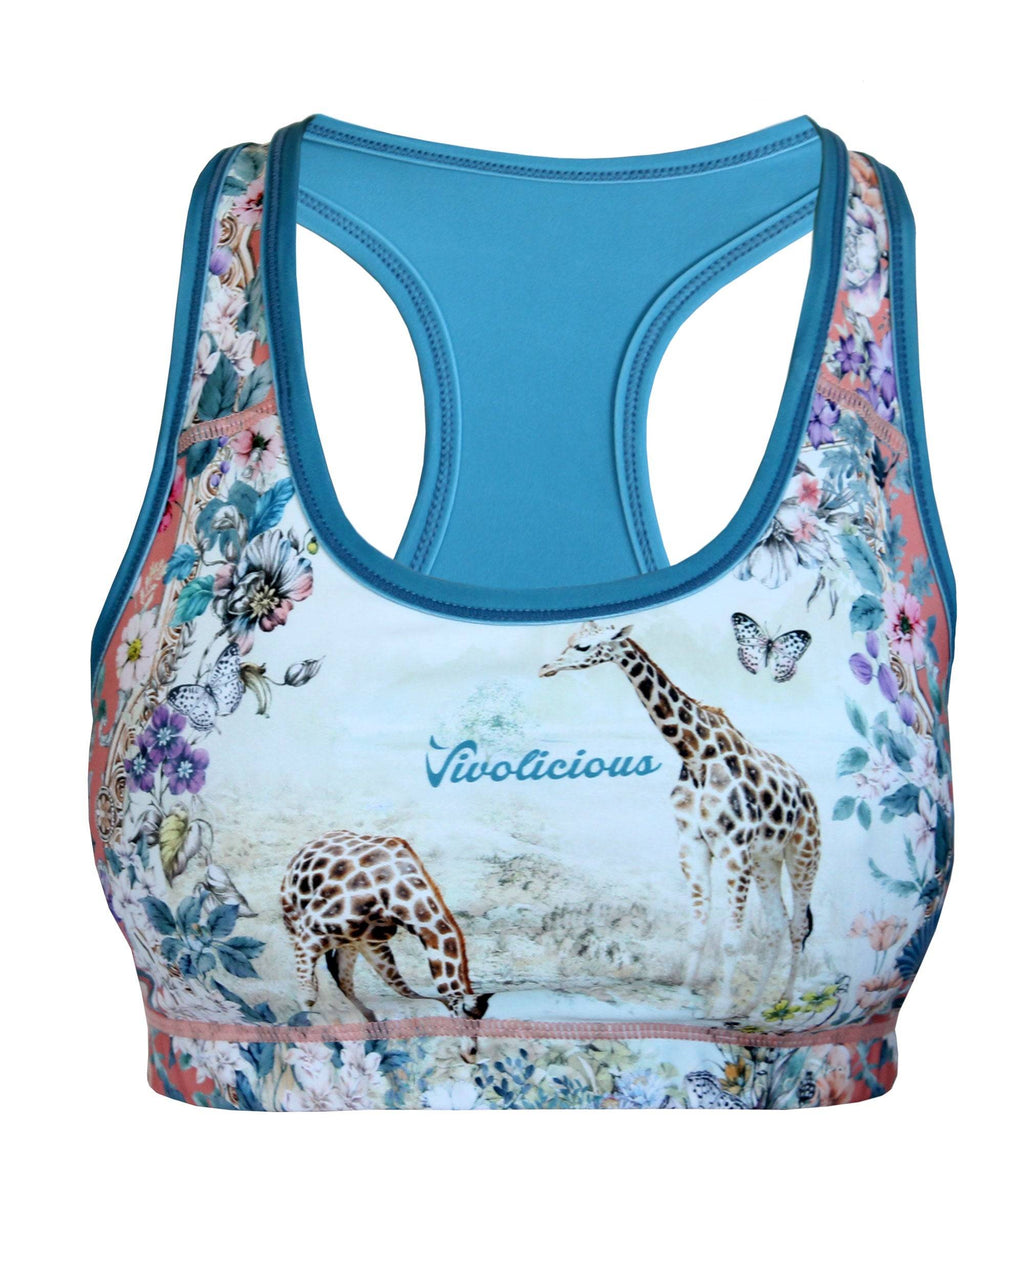 GIRAFFE Intensity Sports Bra VIVOLICIOUS Chafe Free Active Wear